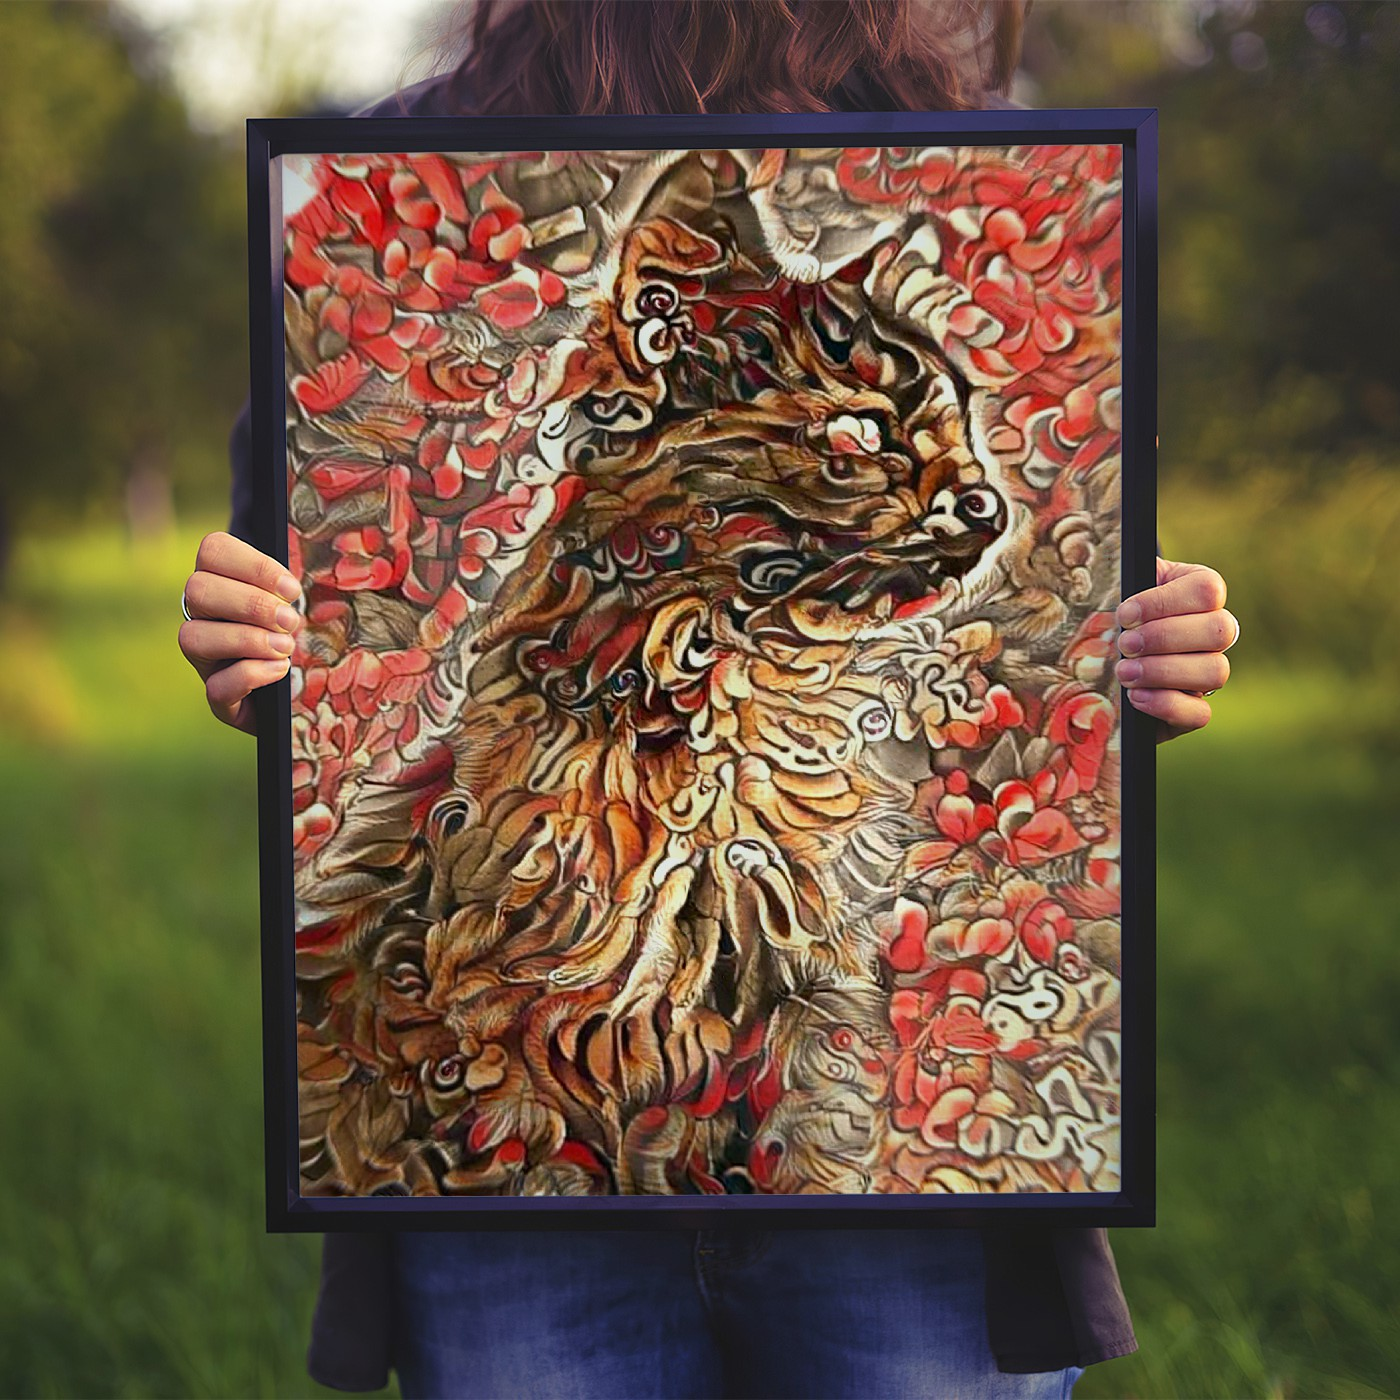 Complex - Museum-quality pet portraits - canvas, poster or framed